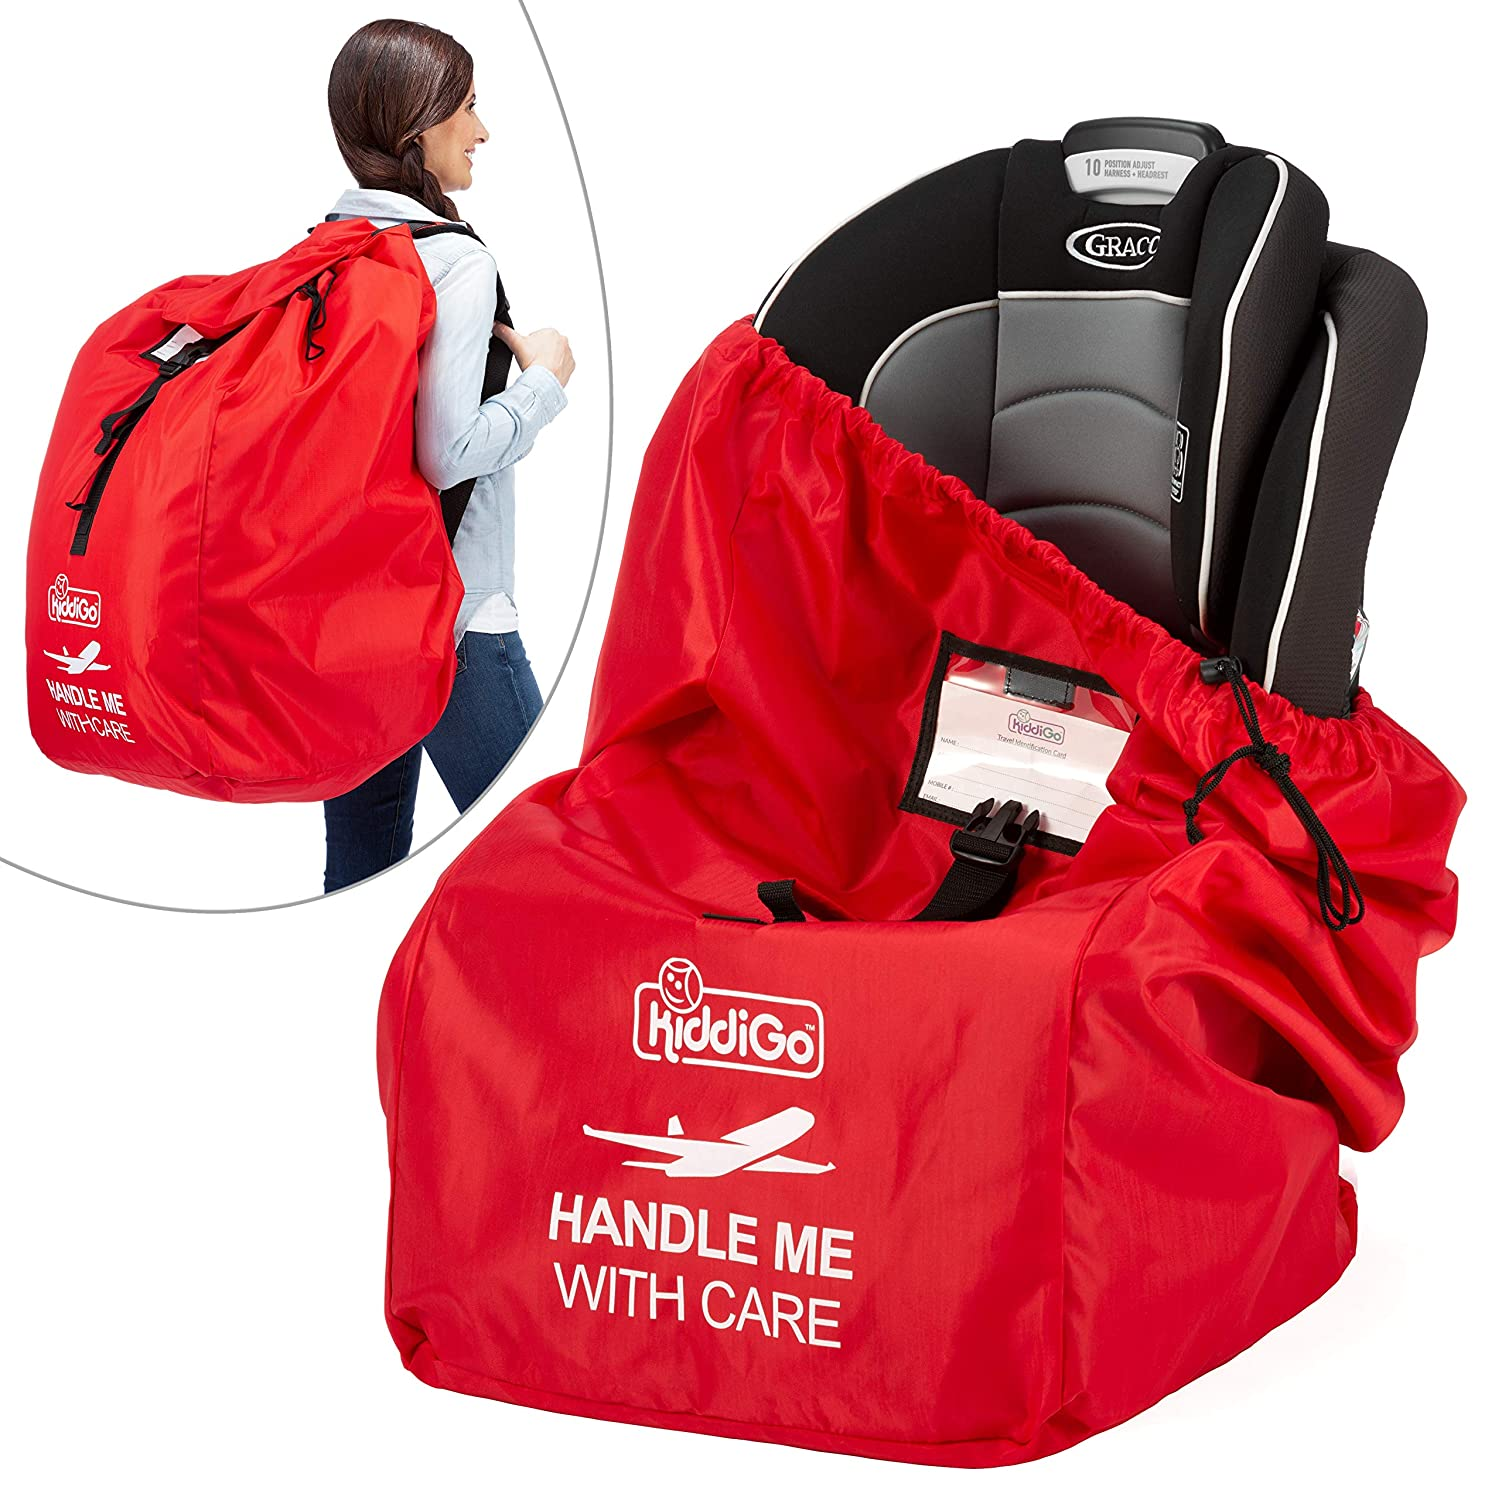 Car Seat Clearance SALE! Limited time! Travel Bag for Gate Airplane Approv Check Airport Very popular